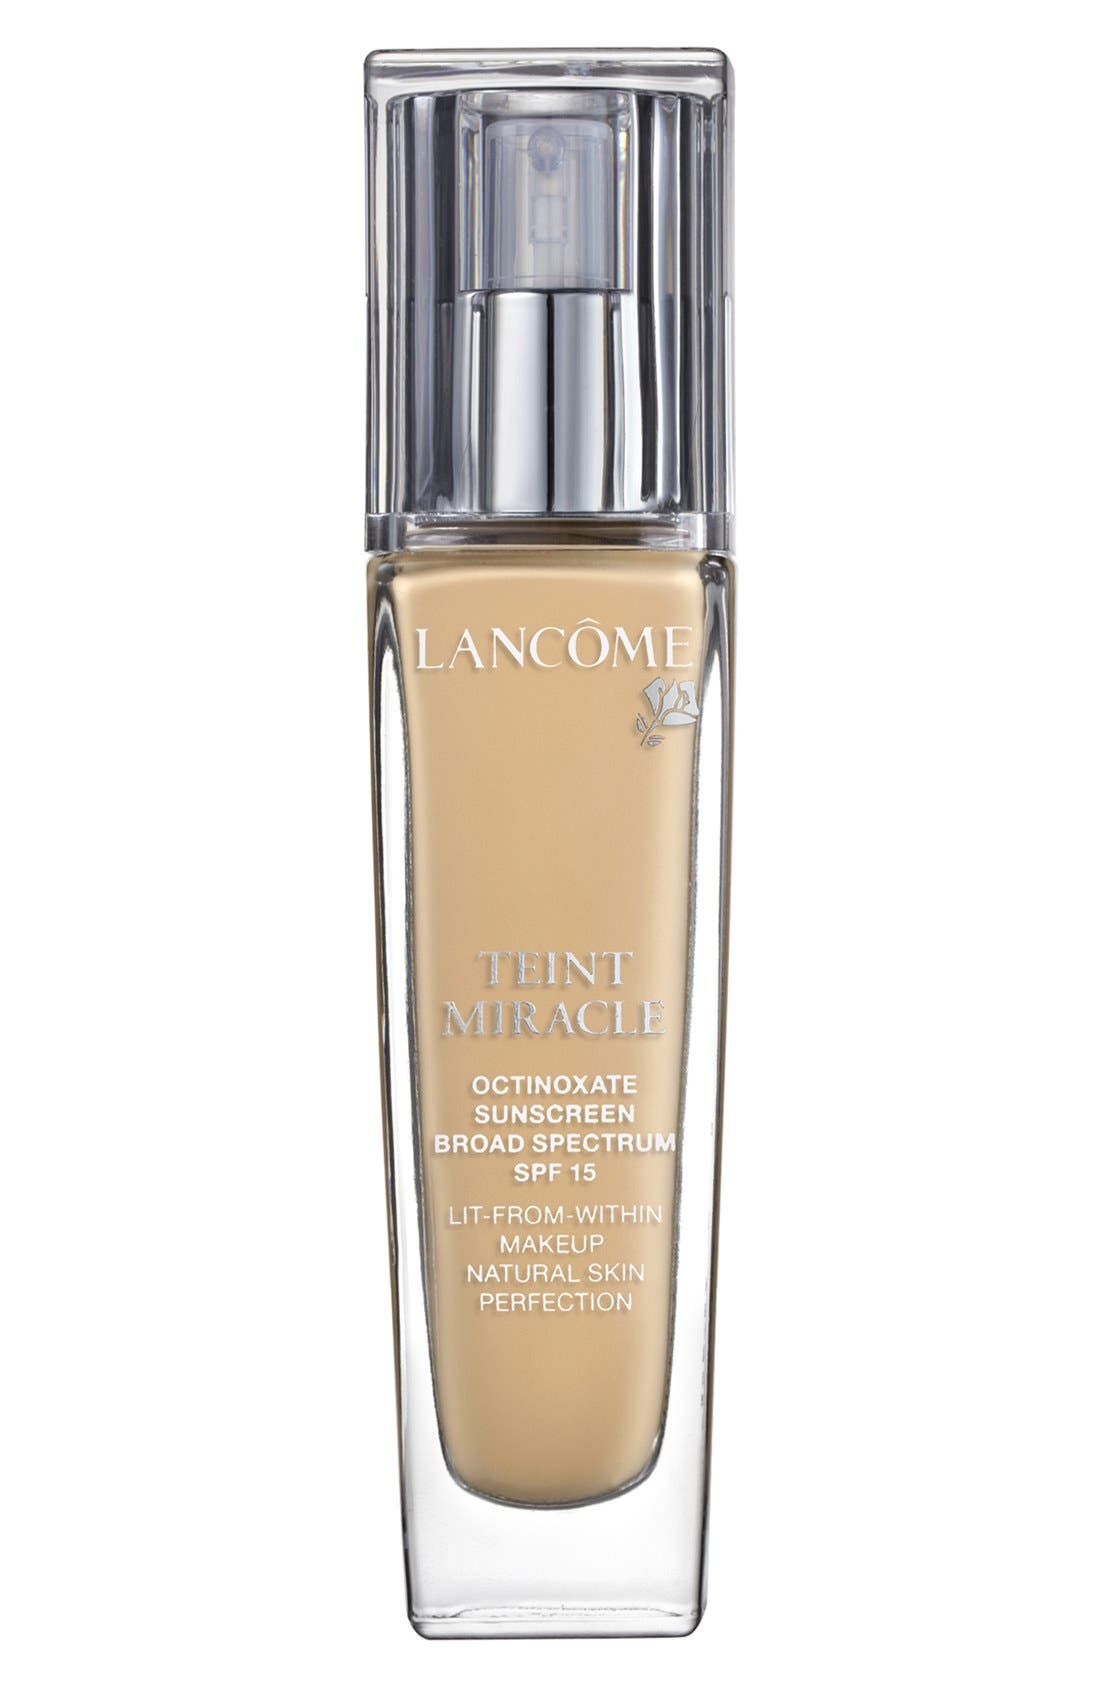 Teint Miracle Lit-from-Within Makeup Natural Skin Perfection SPF 15,                             Main thumbnail 1, color,                             BISQUE 340 (N)